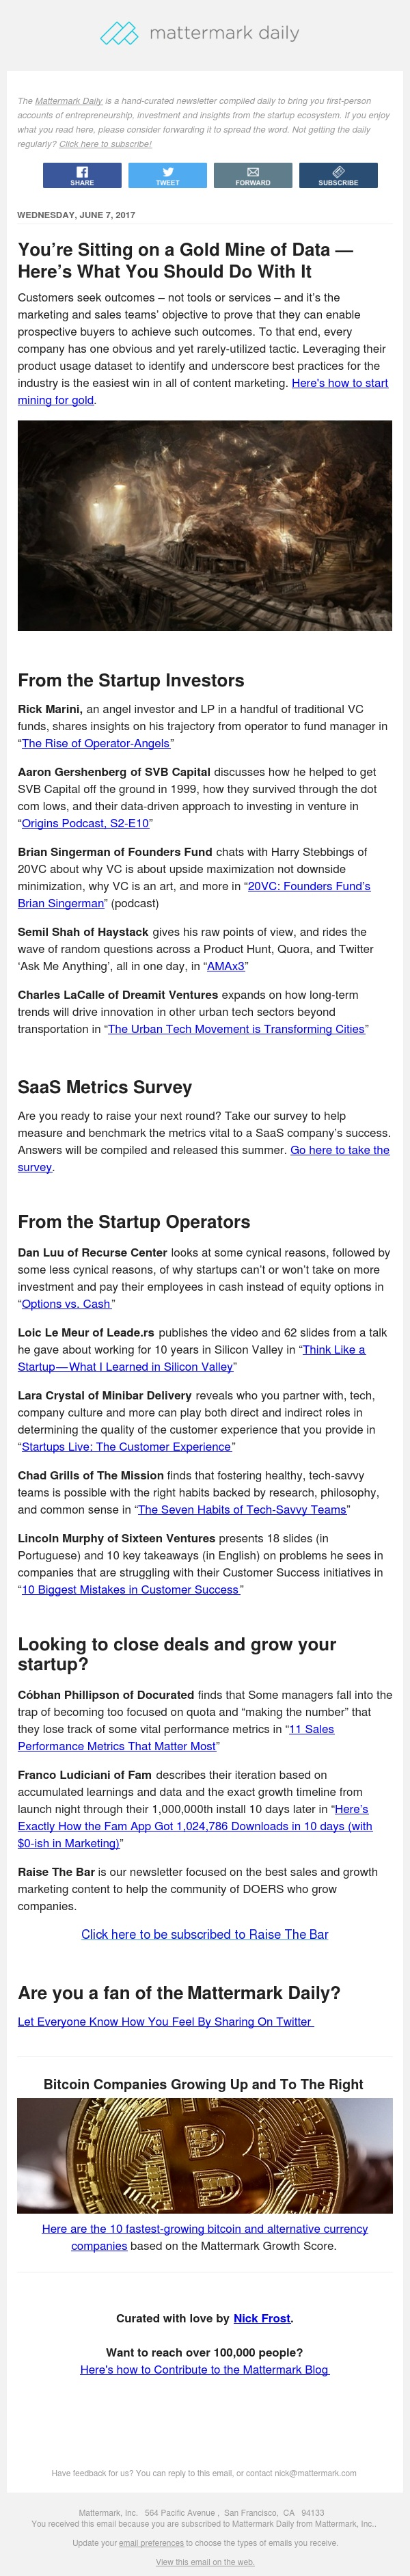 Mattermark Daily - The Rise of Operator-Angels, Equity Options vs. Cash, and More